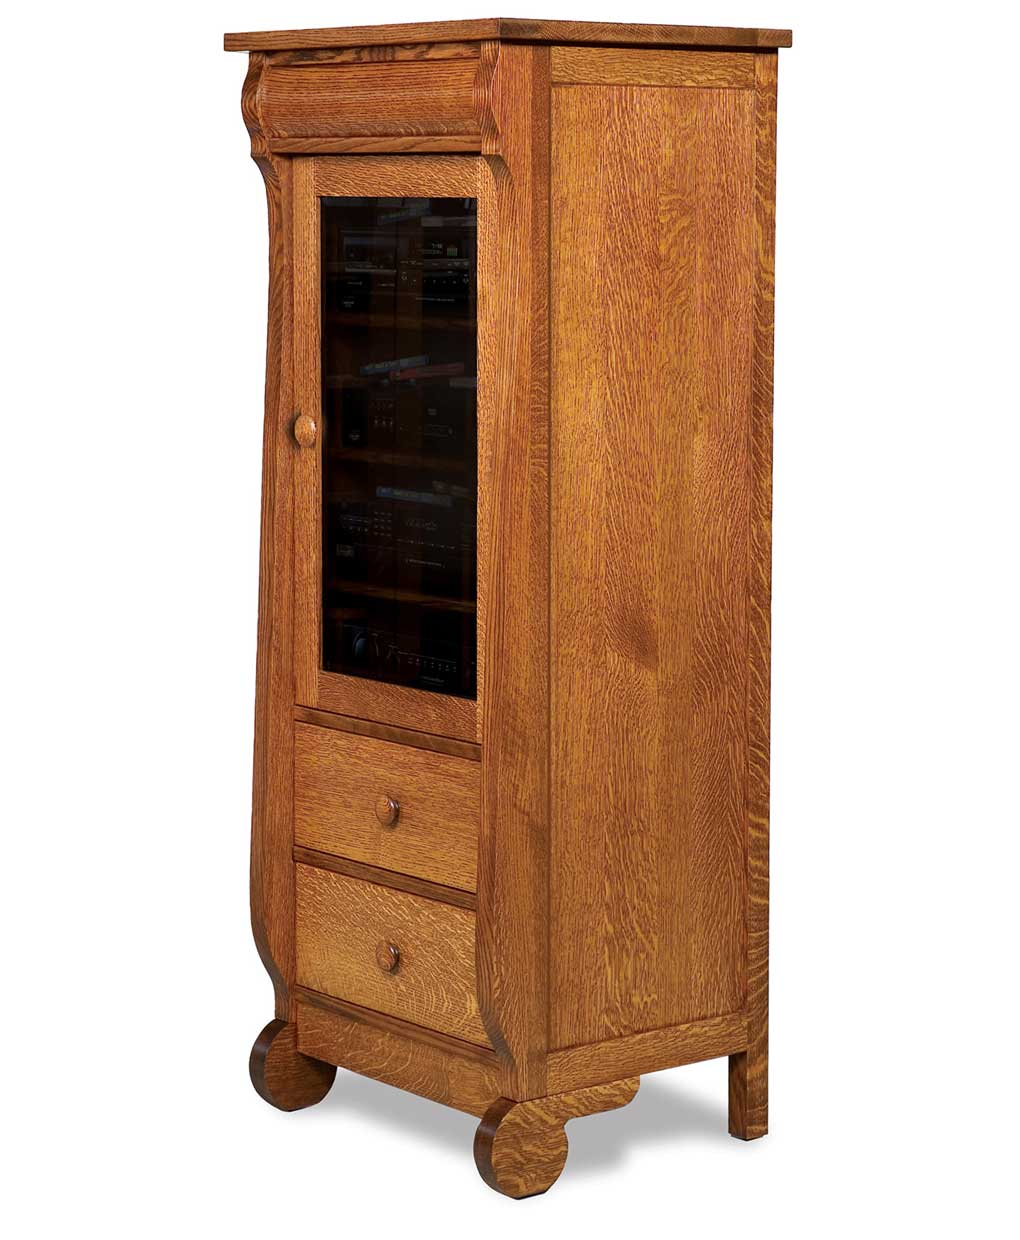 Old classic sleigh 1 door 2 drawer stereo cabinet amish for 1 drawer 2 door cabinet